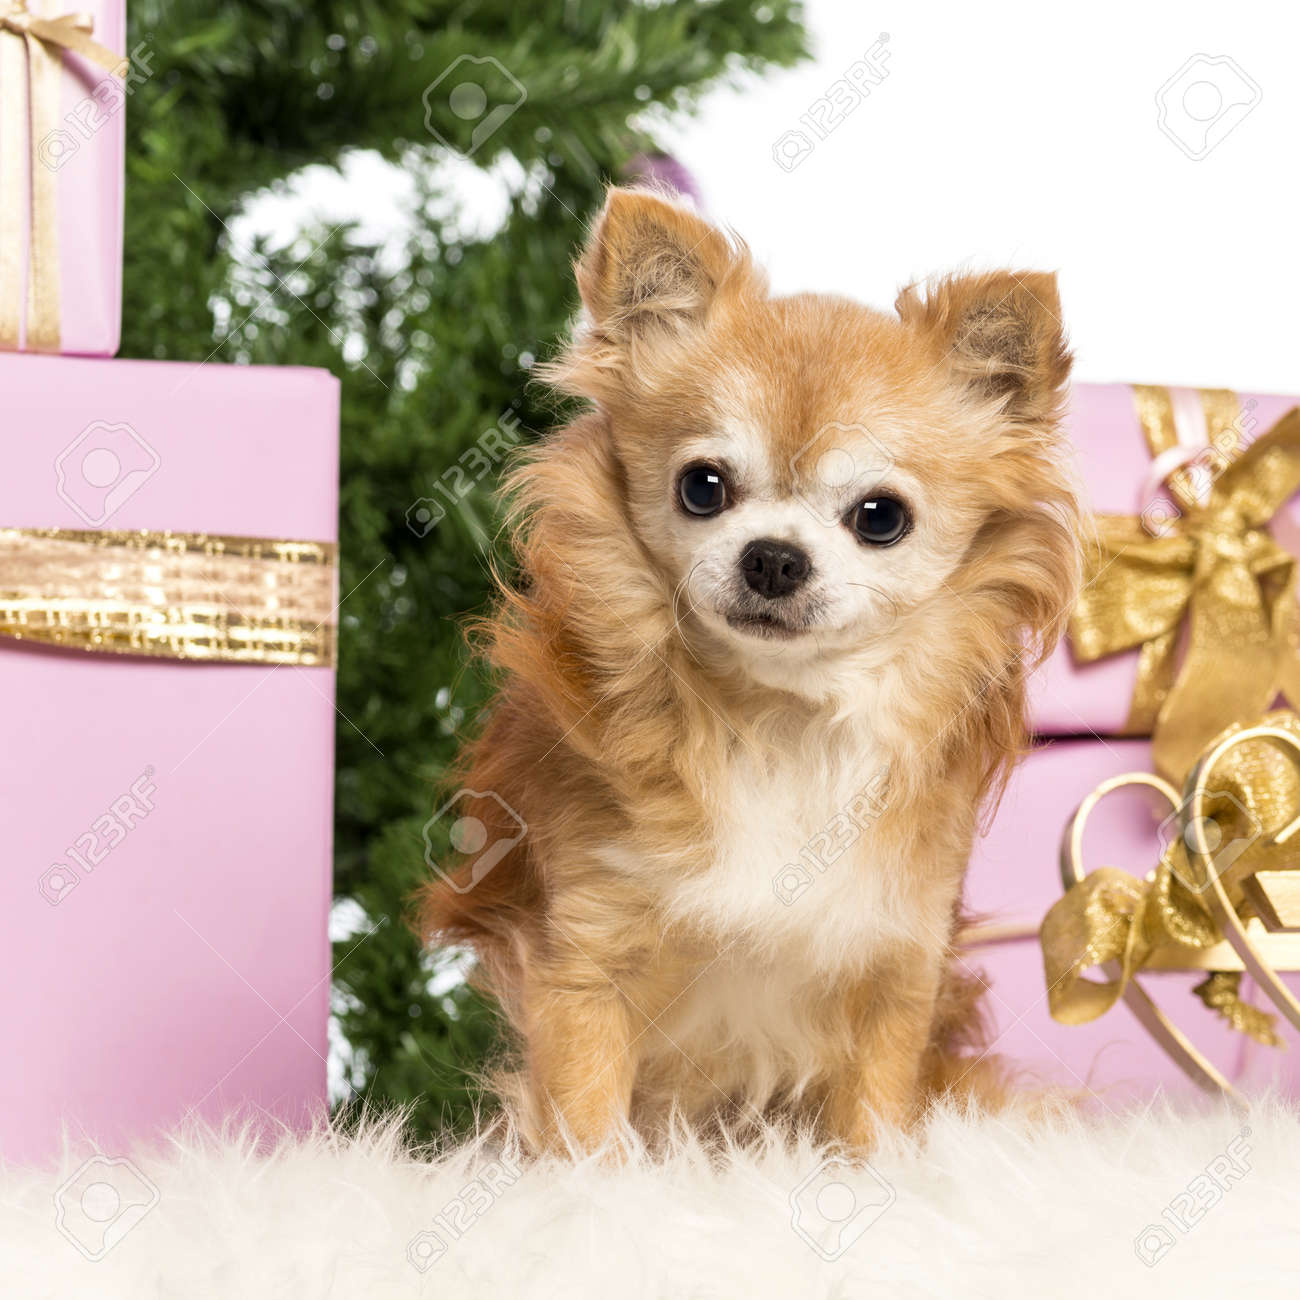 Chihuahua sitting in front of Christmas decorations against white background Stock Photo - 17291595